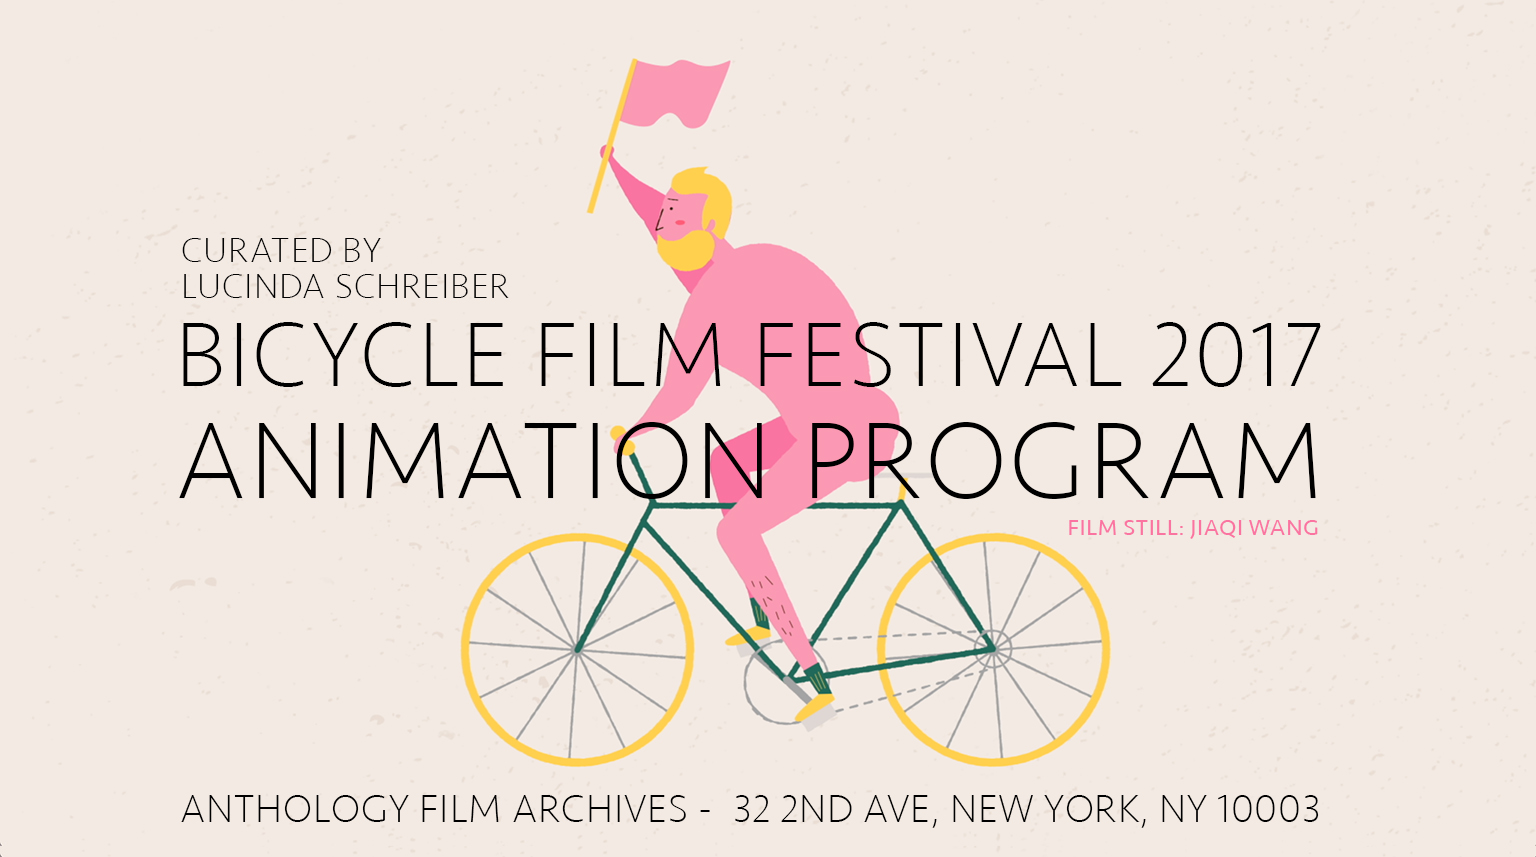 Bicycle Film Festival 2017: Animation Programme